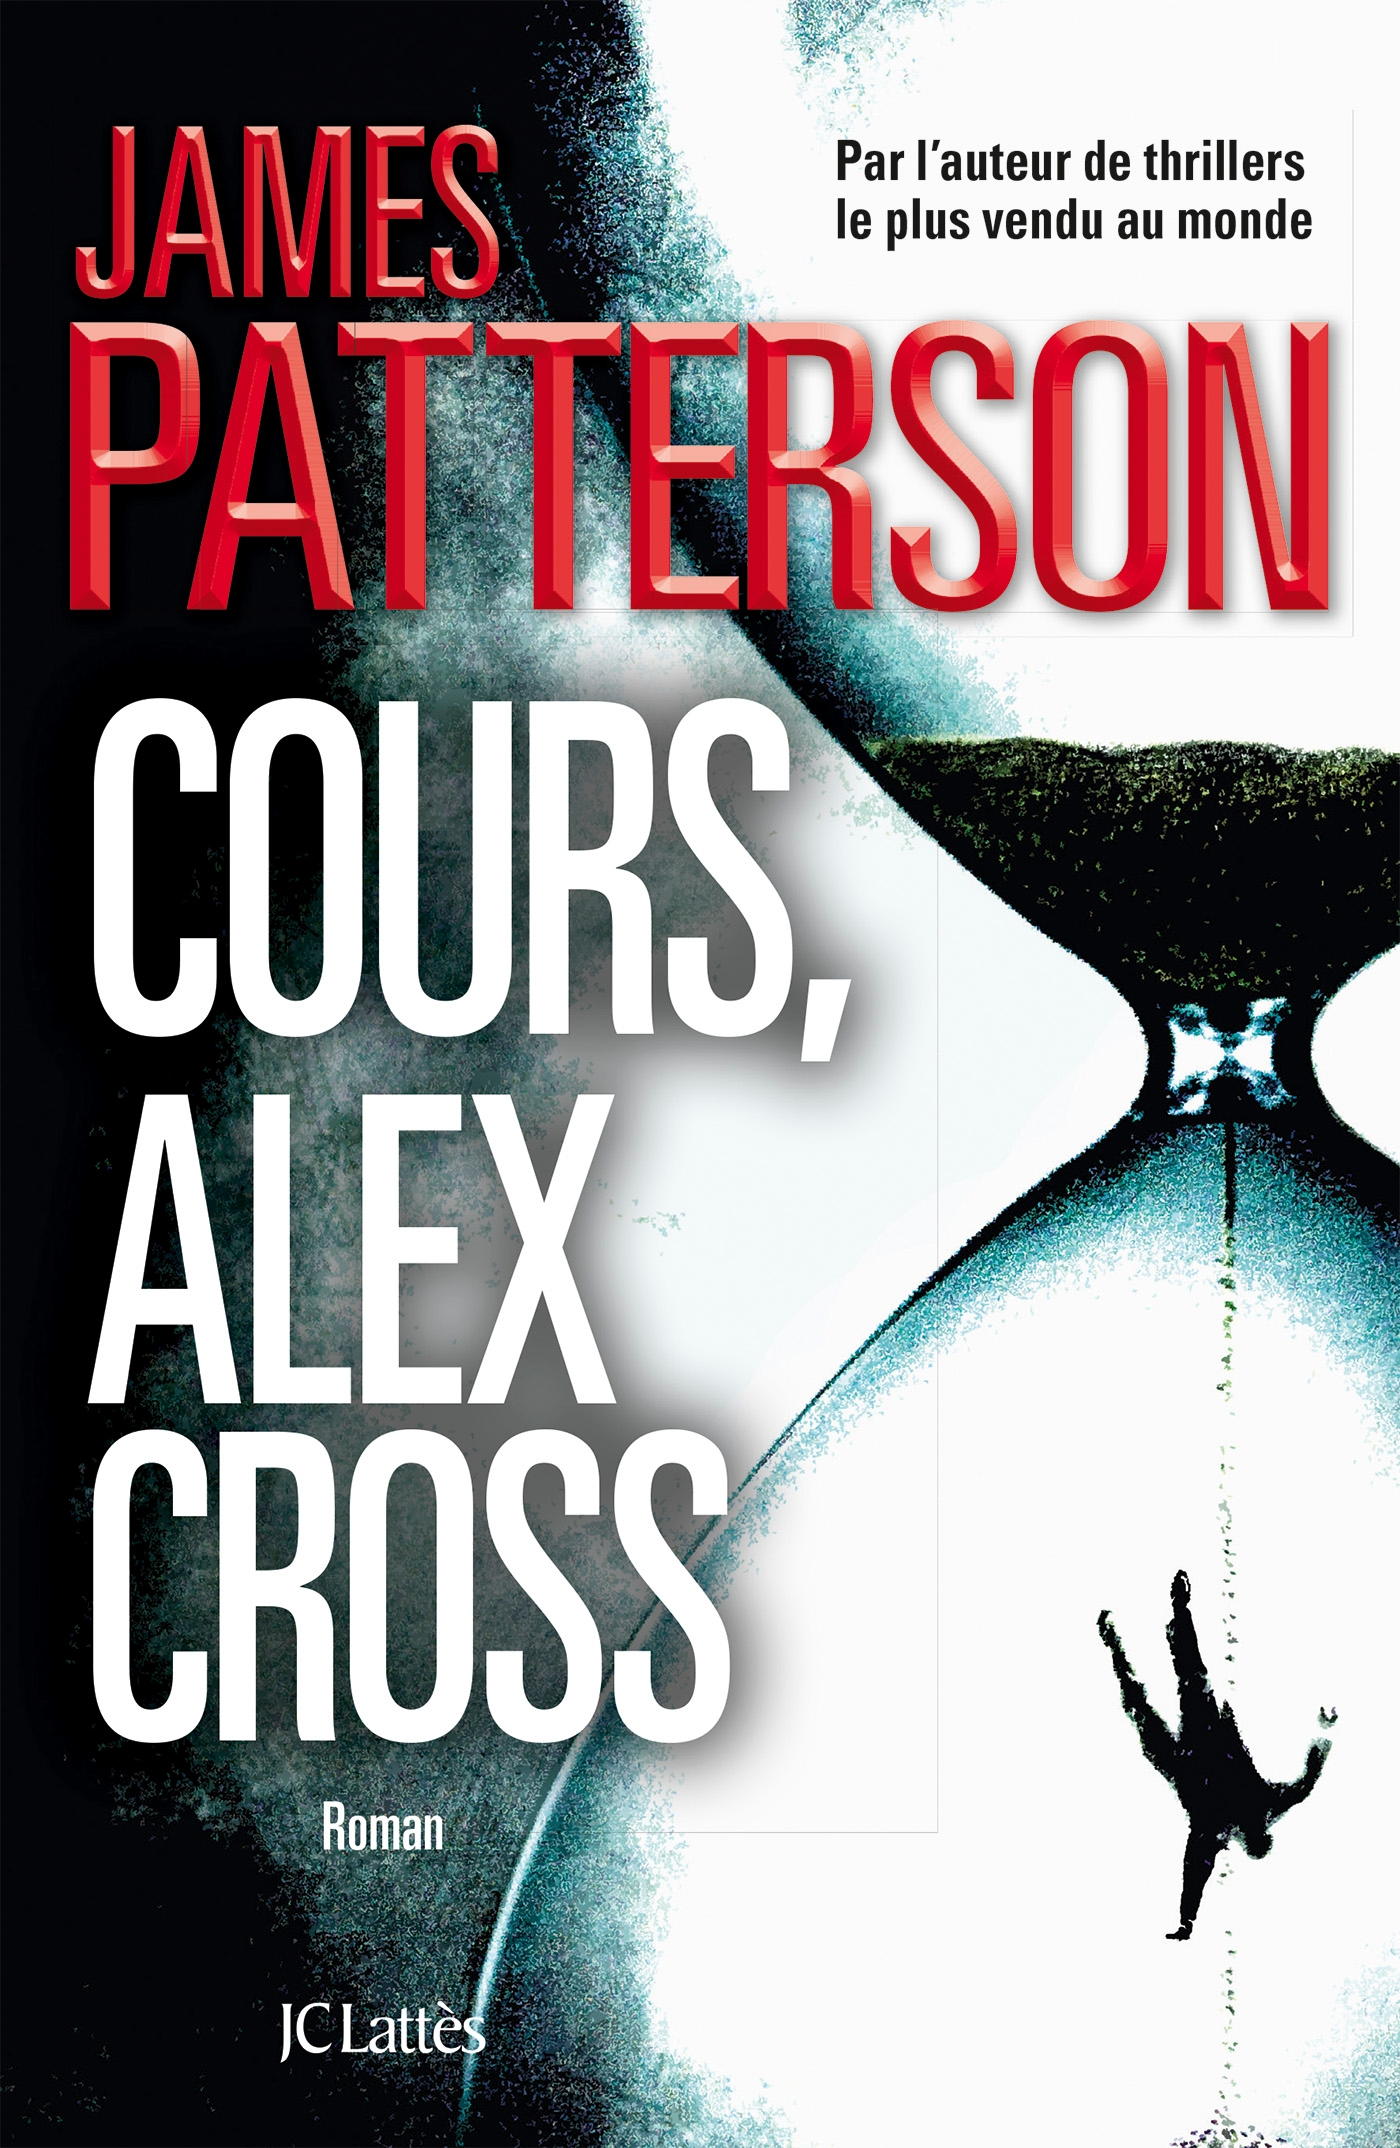 Cours, Alex Cross